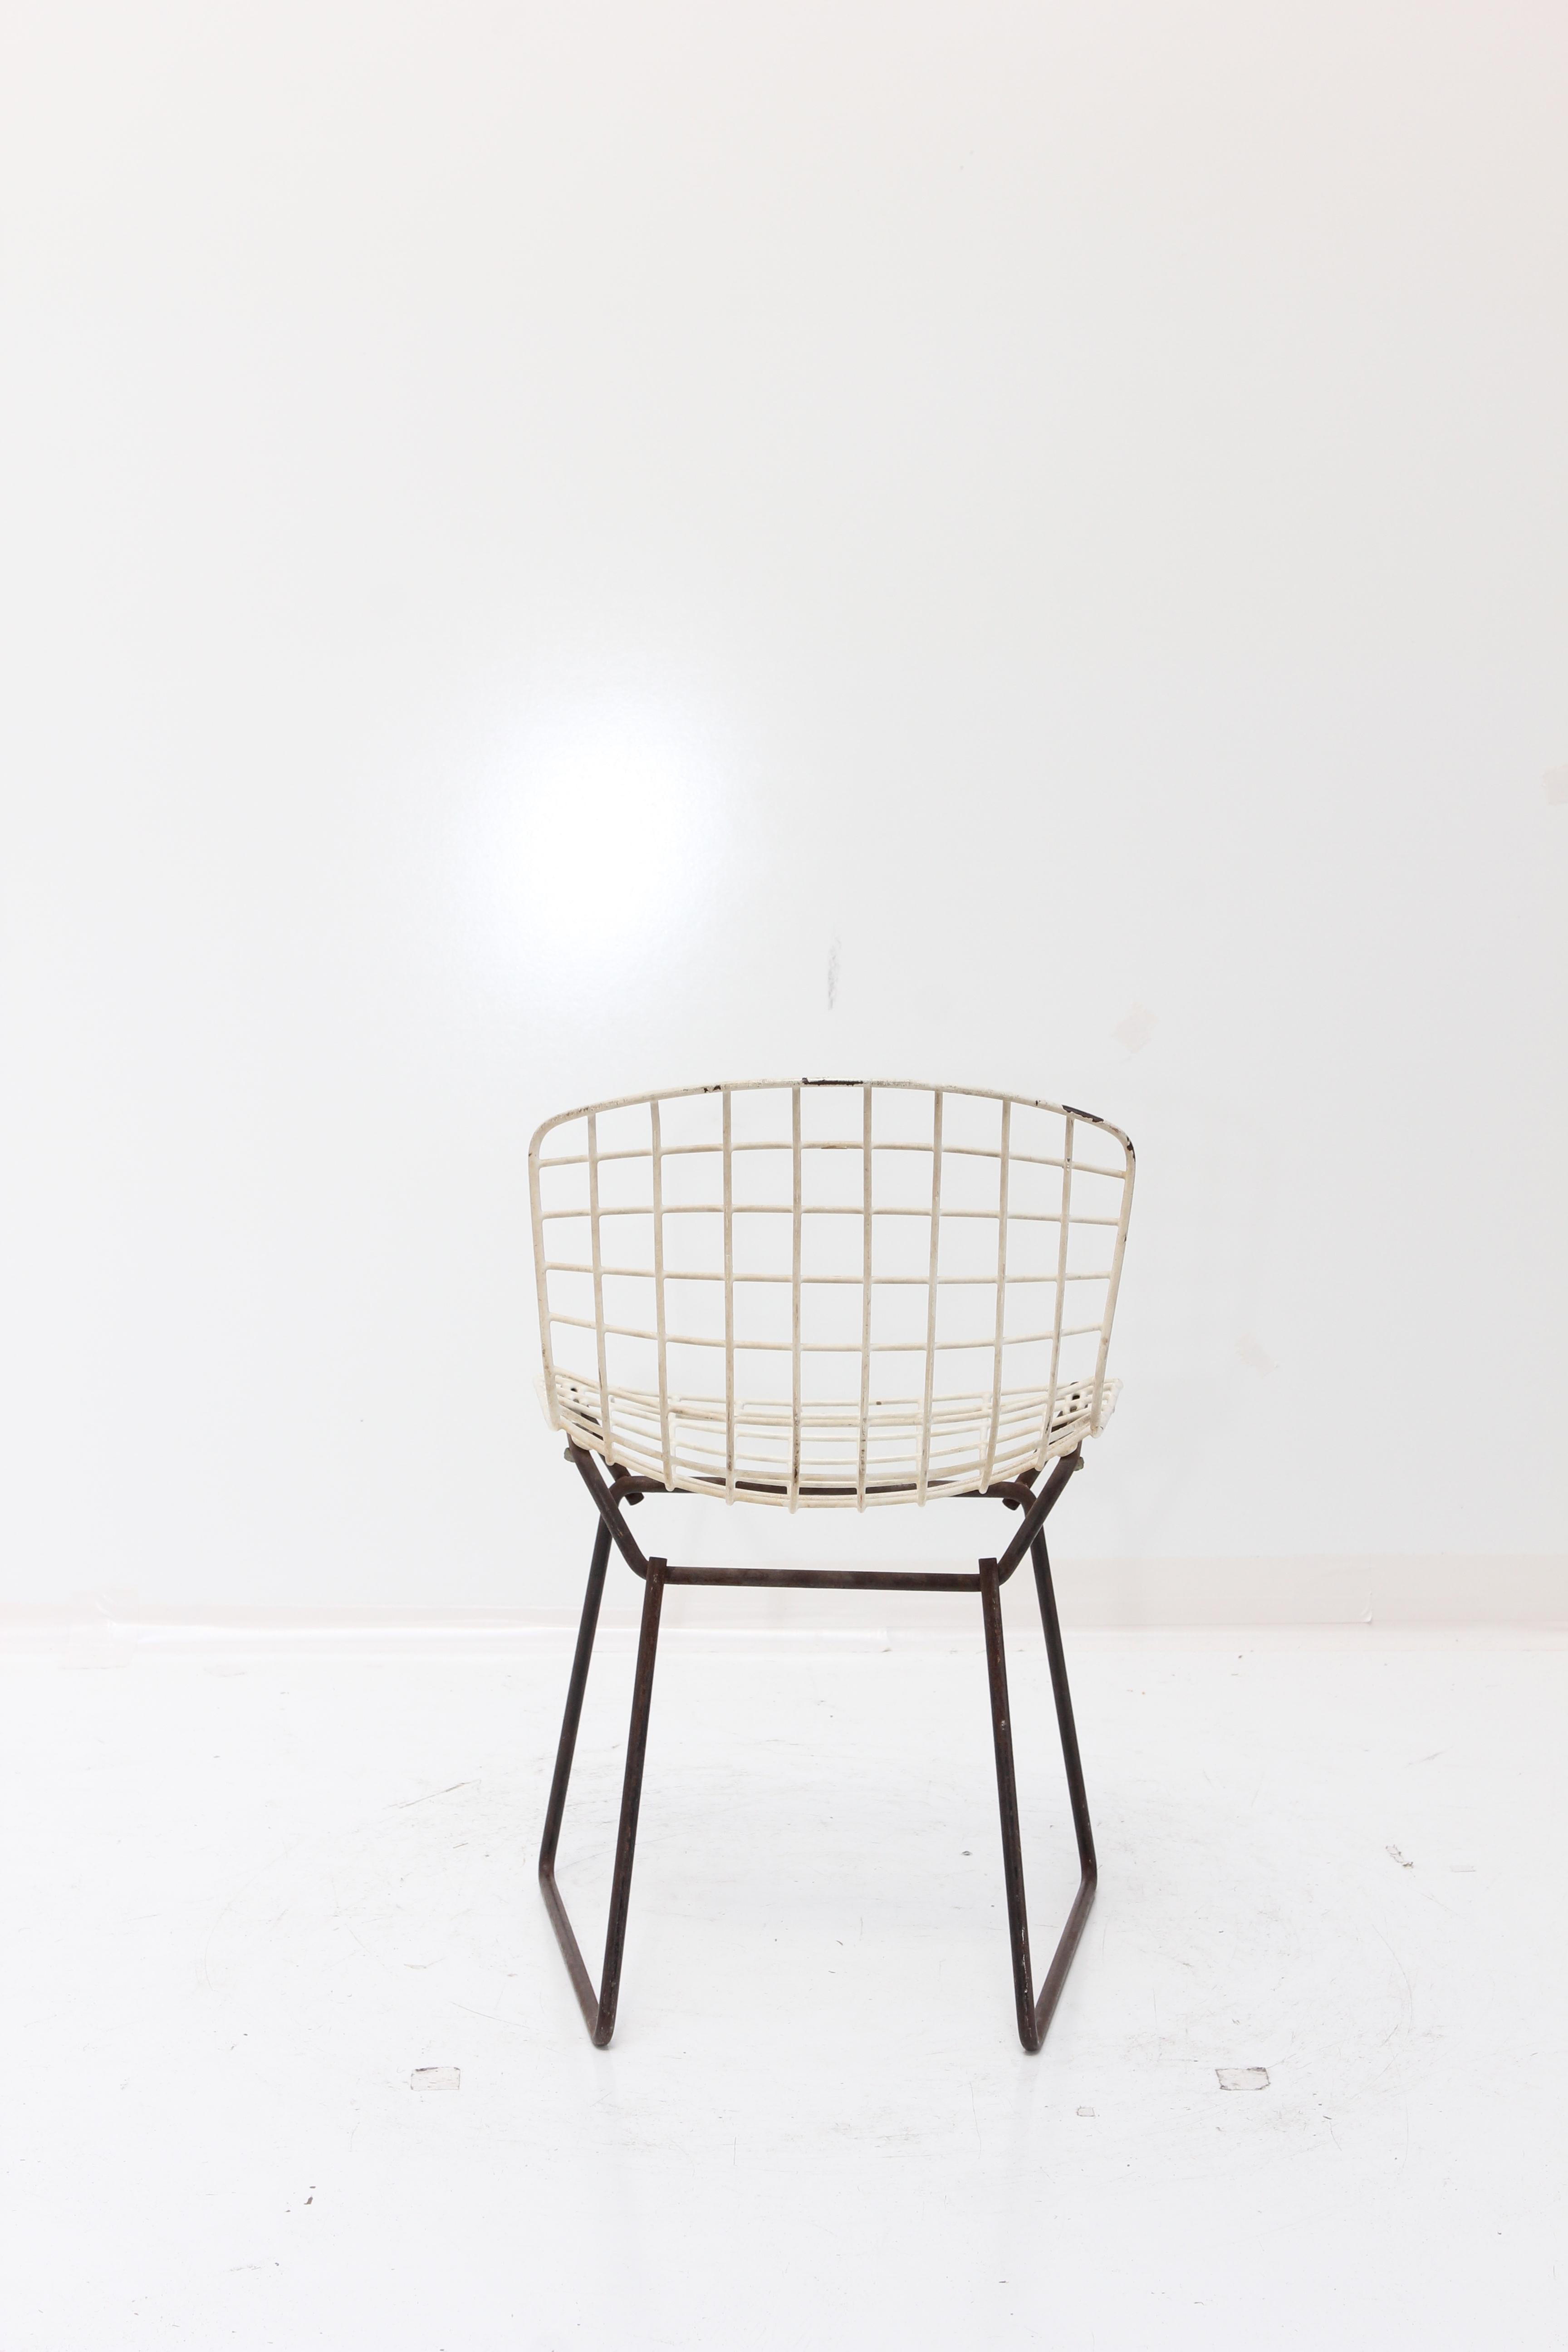 Knoll Bertoia Child Size Chair Black/White   Image 4 Of 11